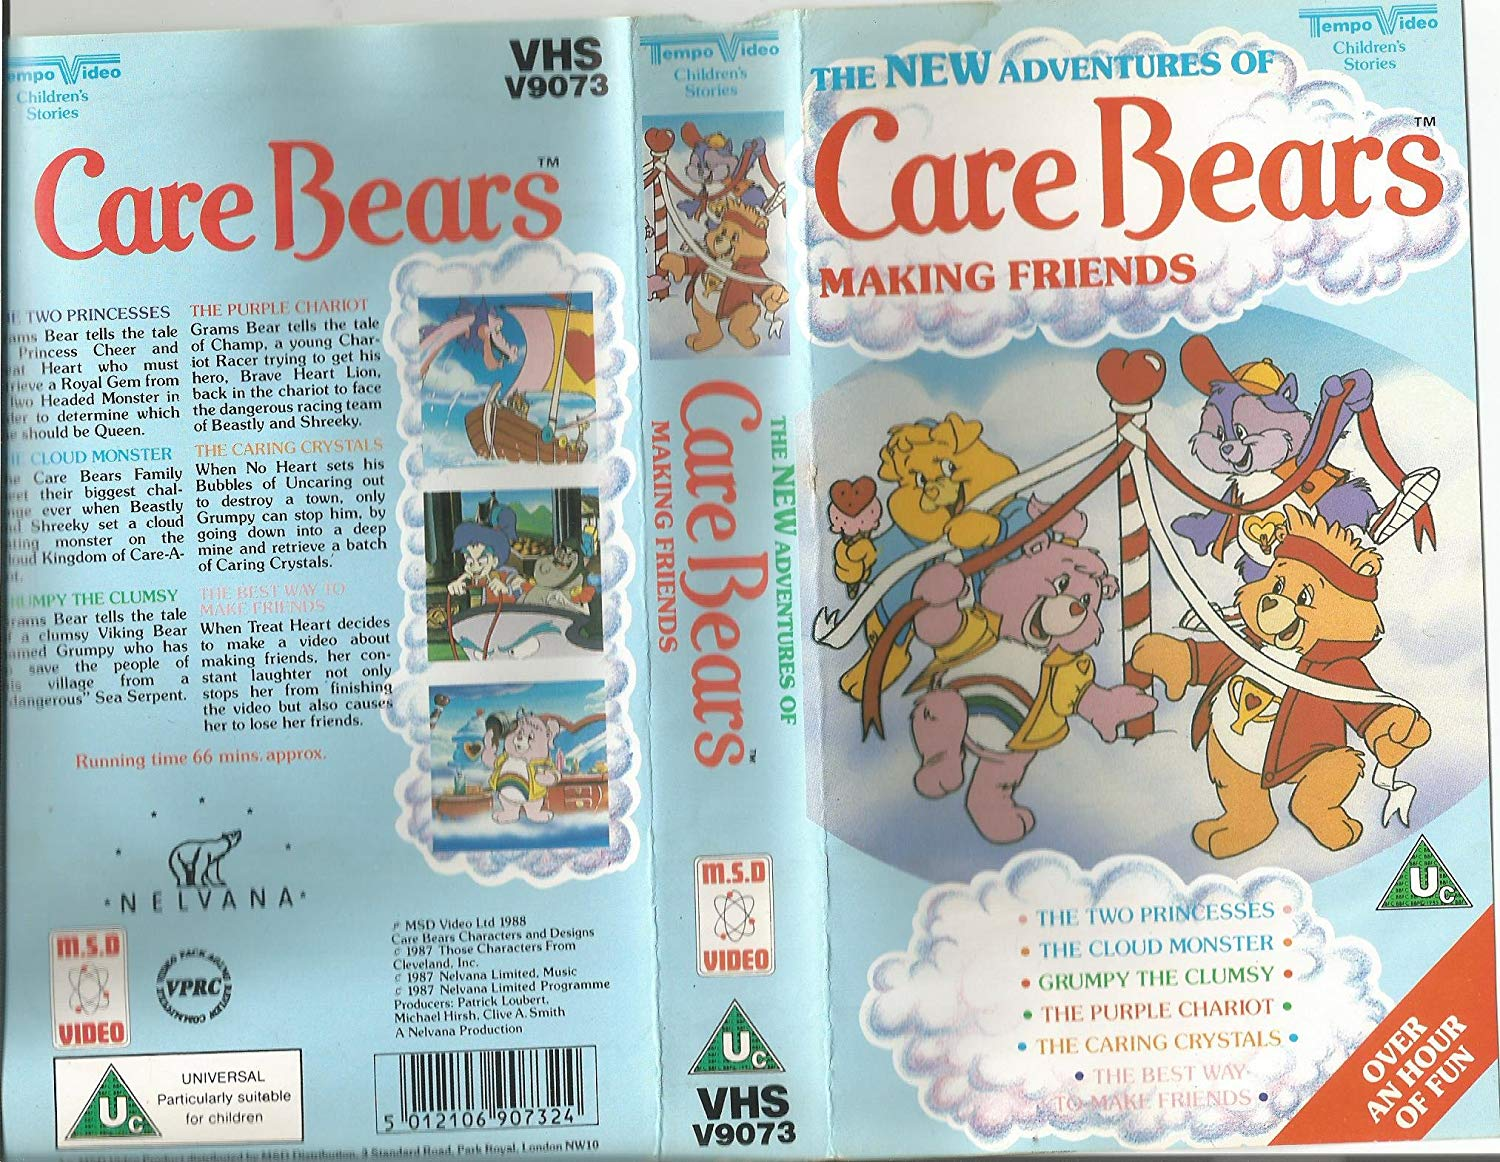 The New Adventures of Care Bears - Making Friends